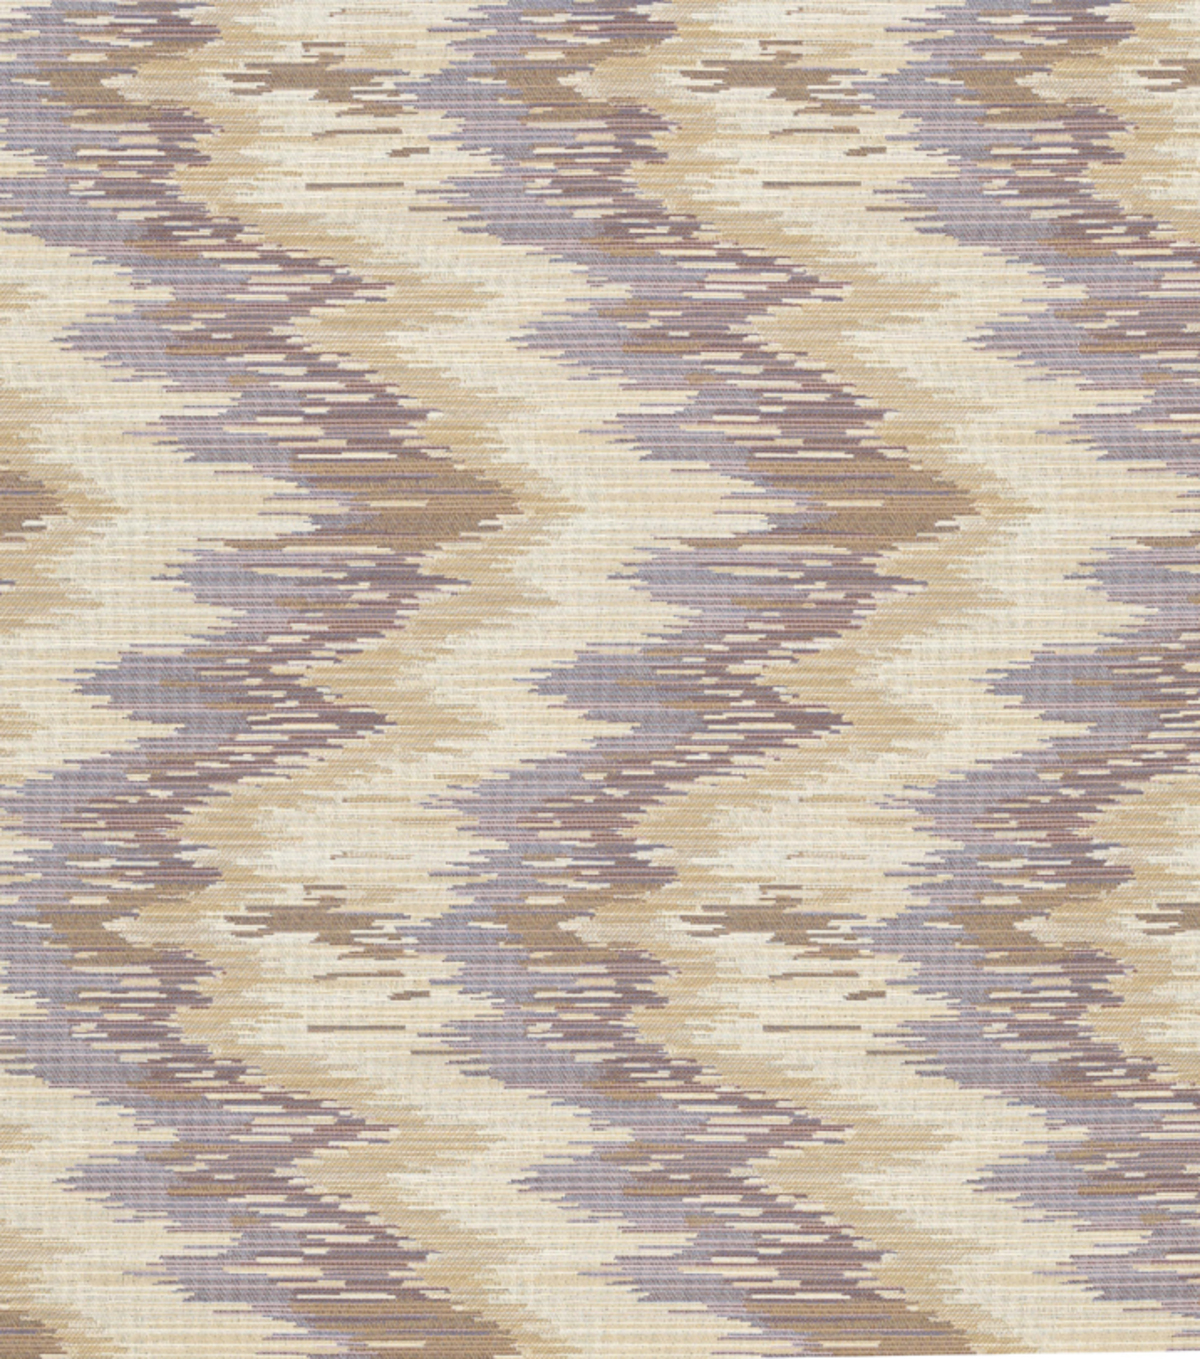 Home Decor 8\u0022x8\u0022 Fabric Swatch-Aumont Way Boisenberry